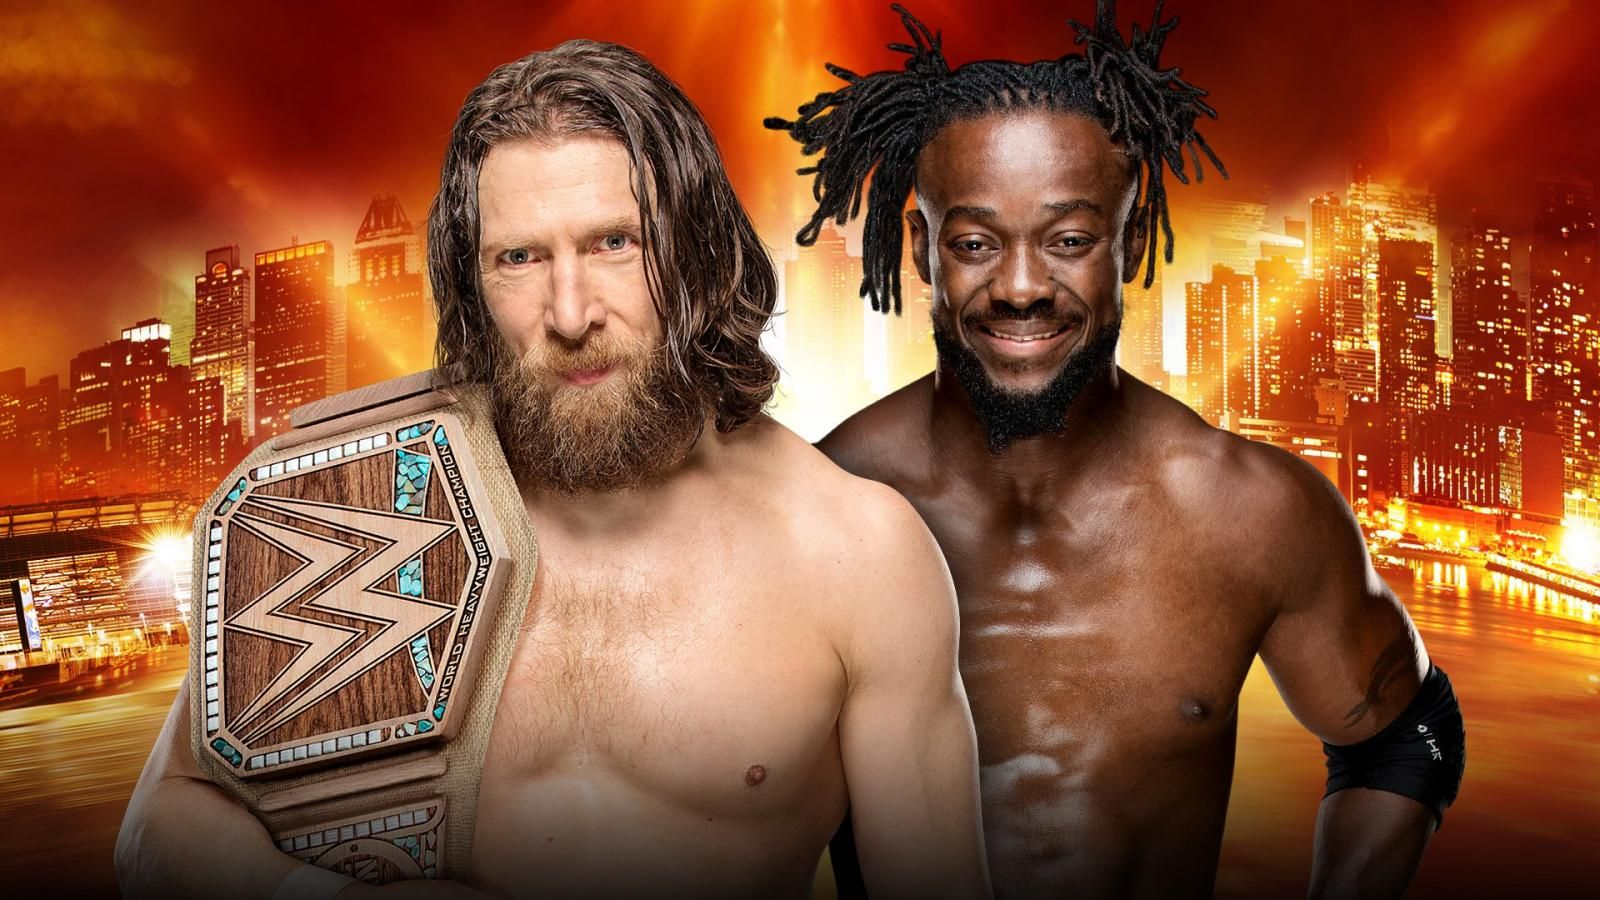 Daniel Bryan (c) vs Kofi Kingston